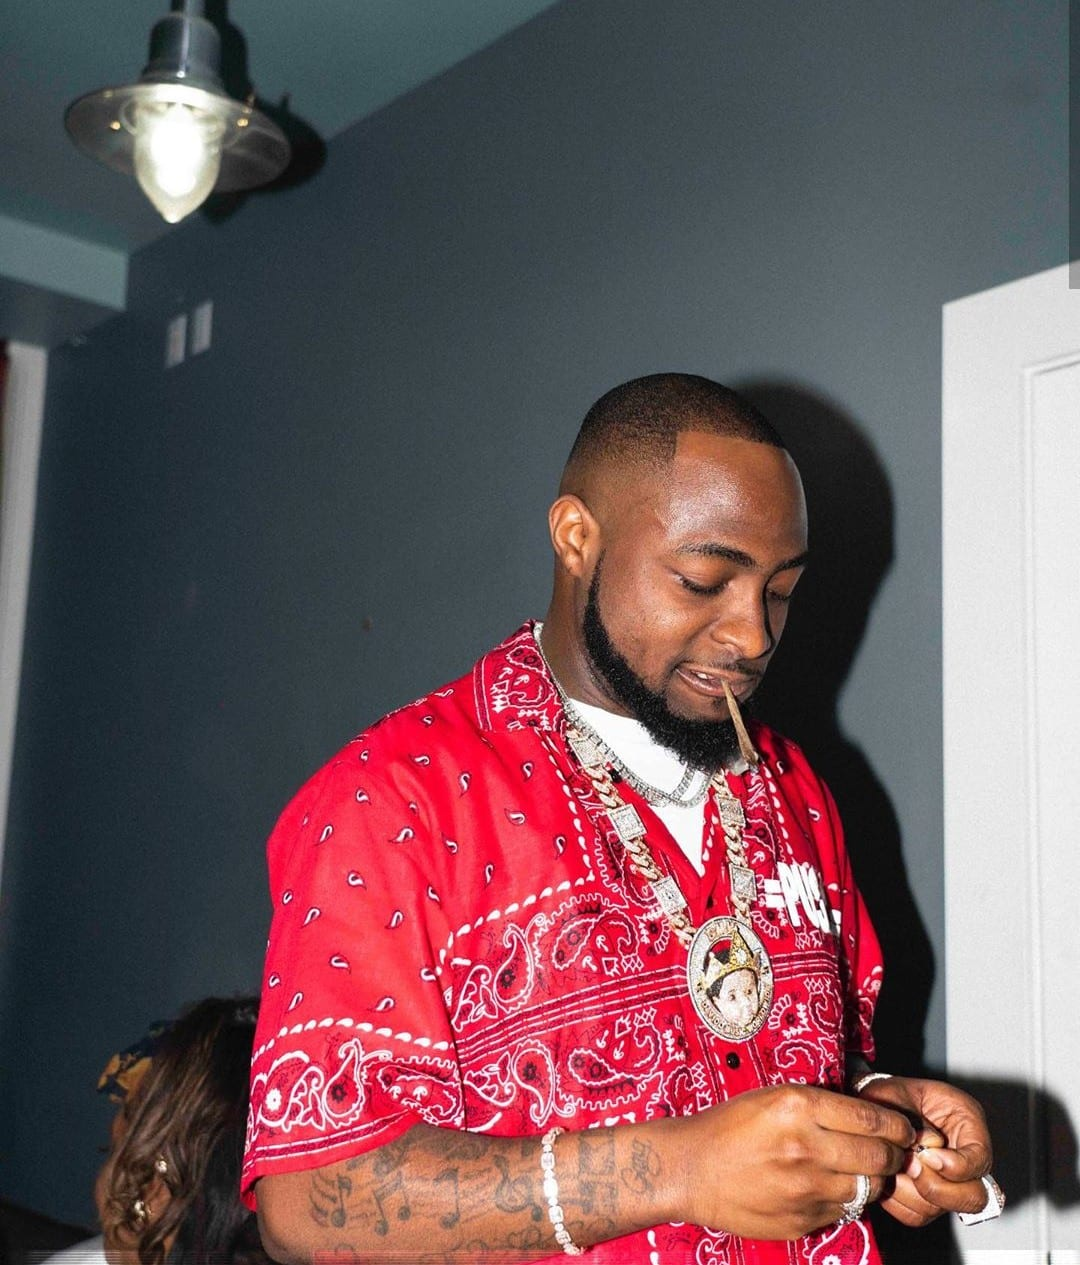 Gateman in shock as Davido surprises him with mouth watering breakfast